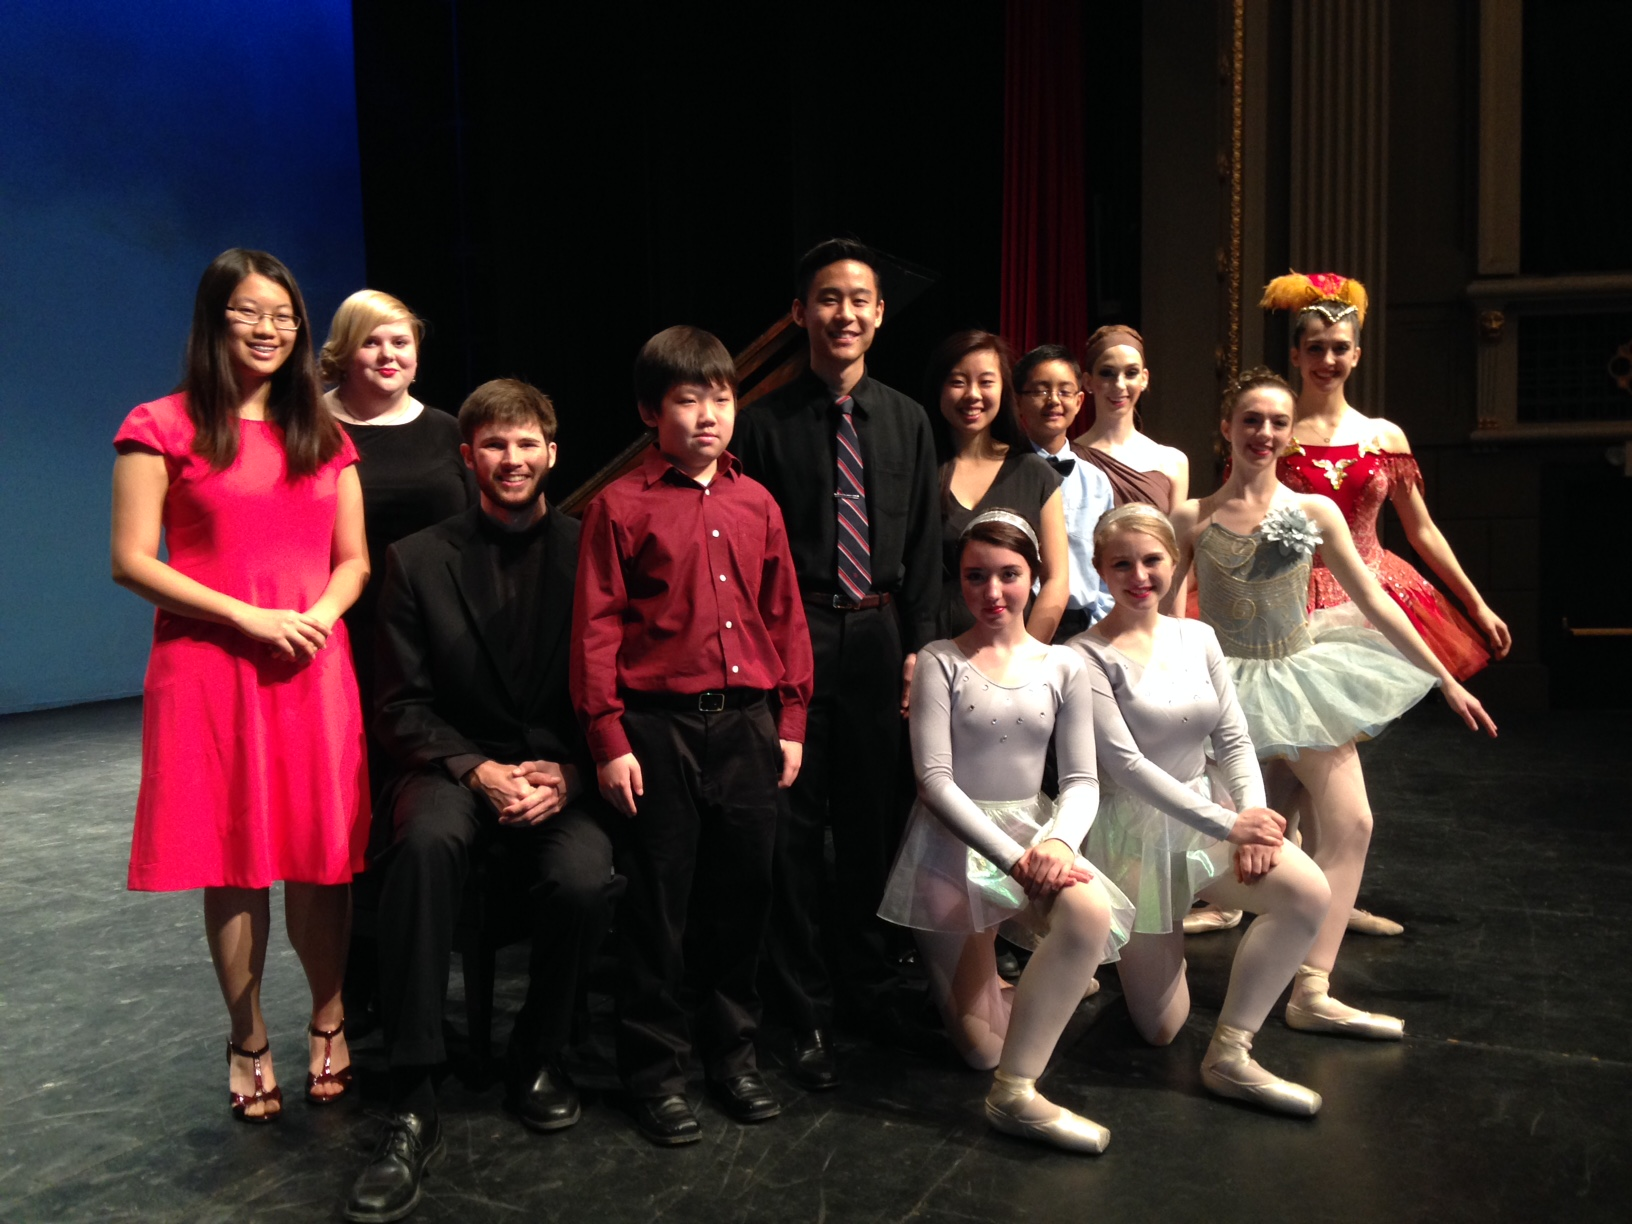 Performers, March 8, 2015